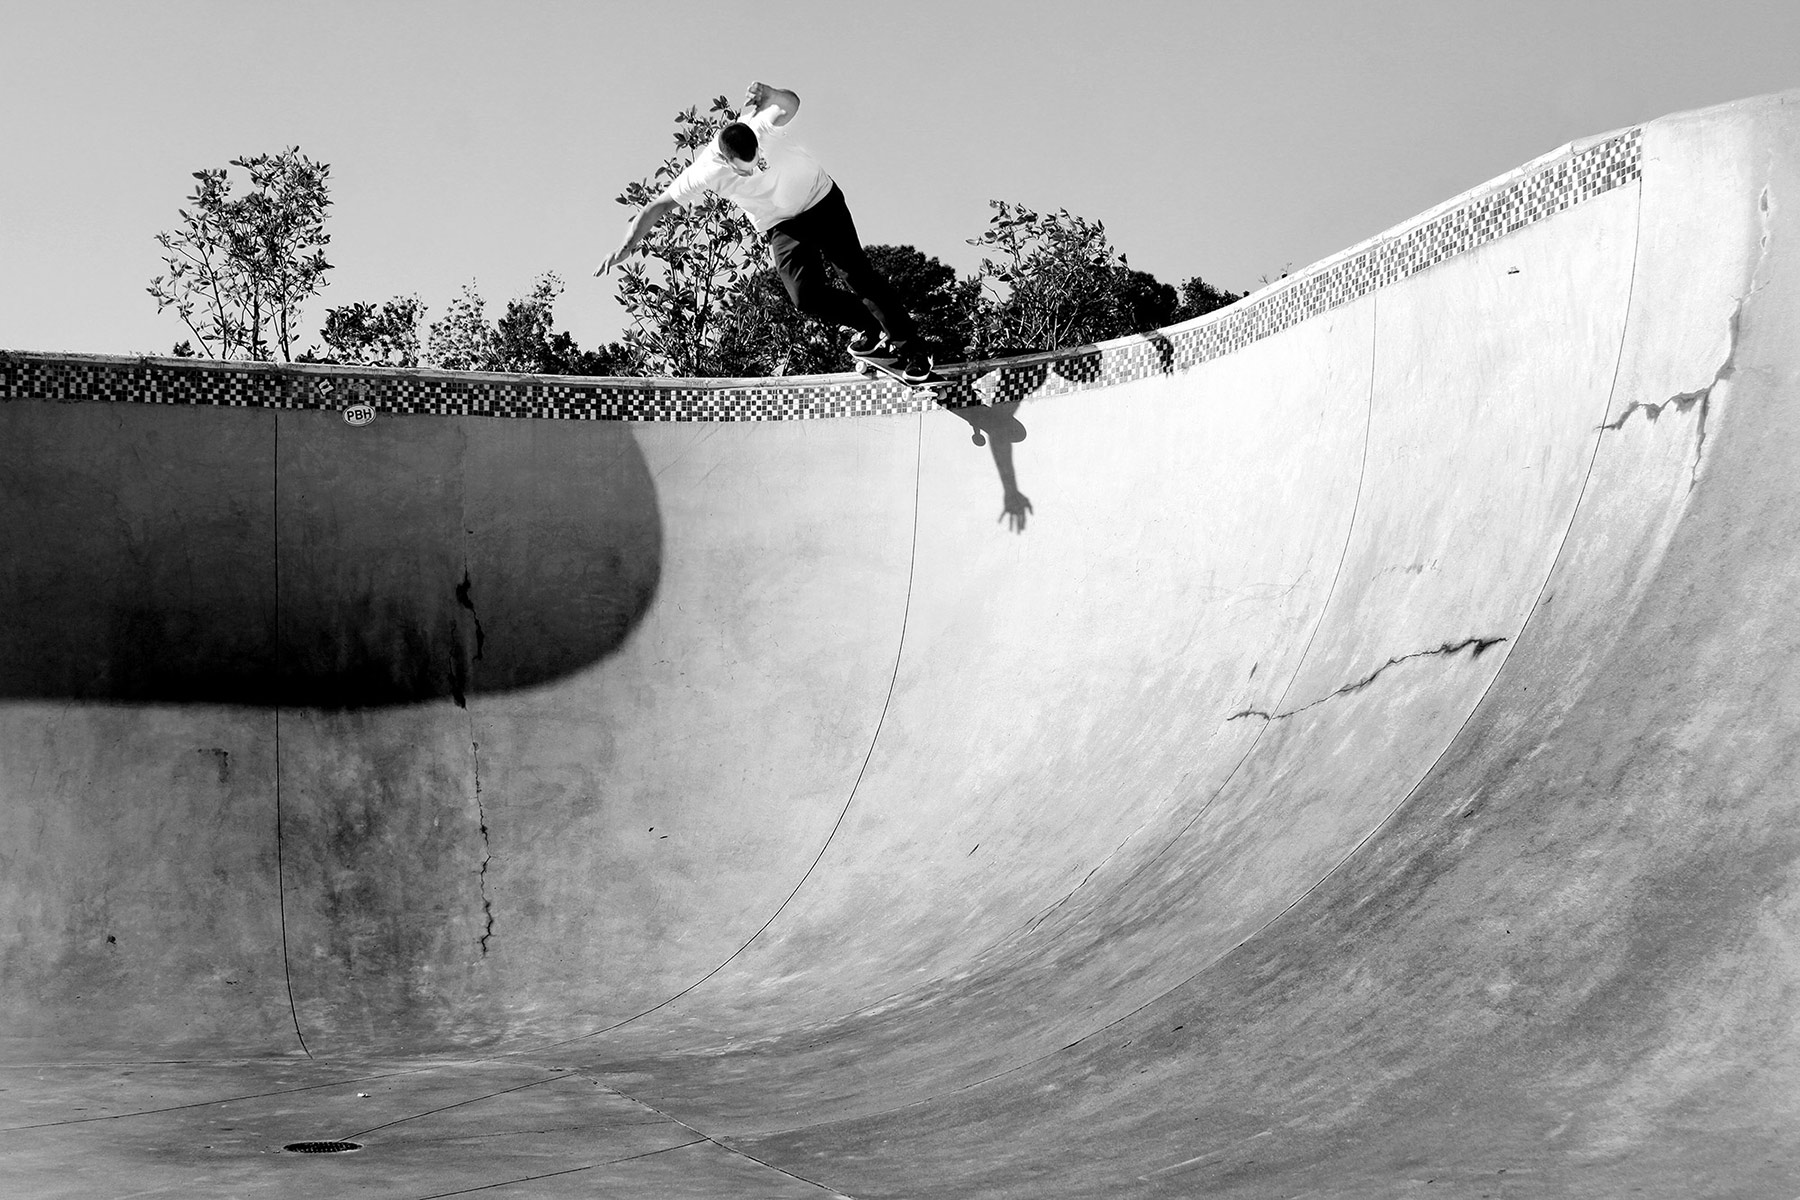 trey winslow backside smith grind norfolk va